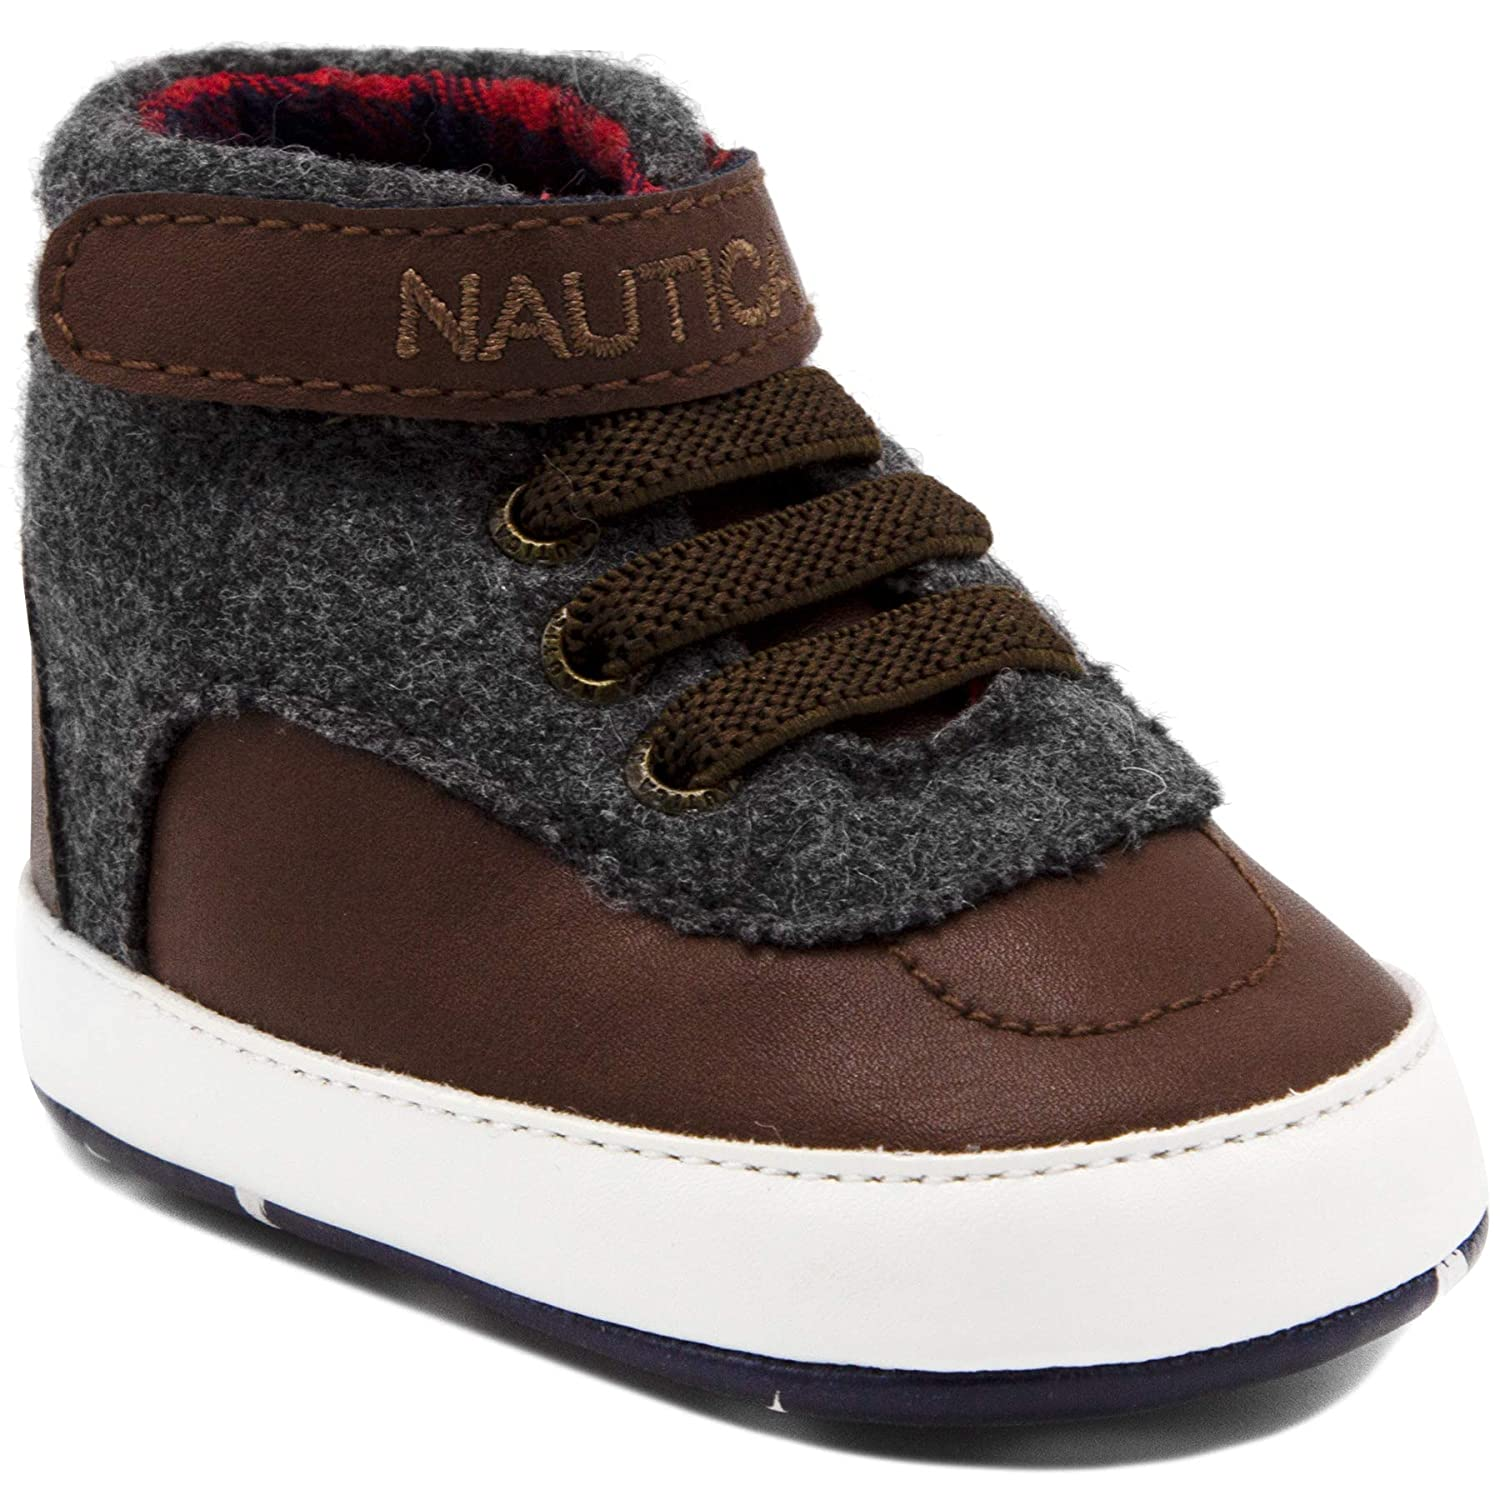 Crib Sneakers Bootie,Toddler//Infant Soft Sole Shoes Nautica Tiny Boot Like High-Top Baby Prewalker